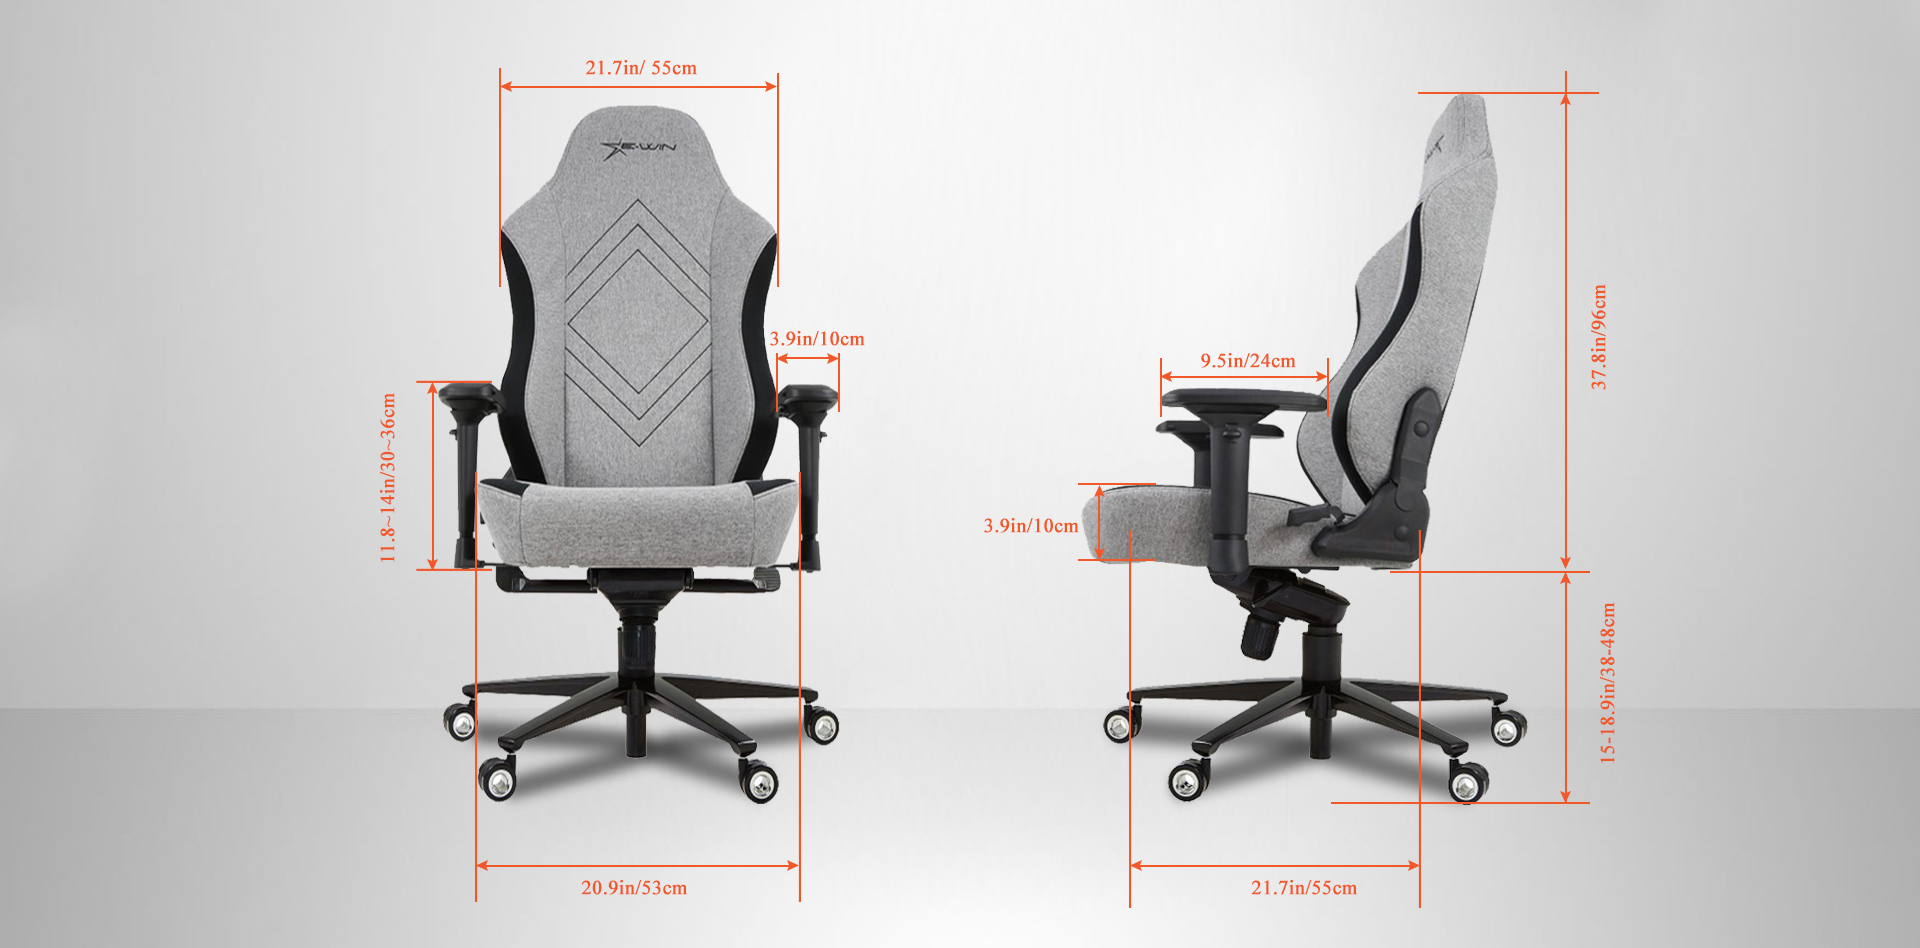 EwinRacing Champion Gaming Chairs Dimensions